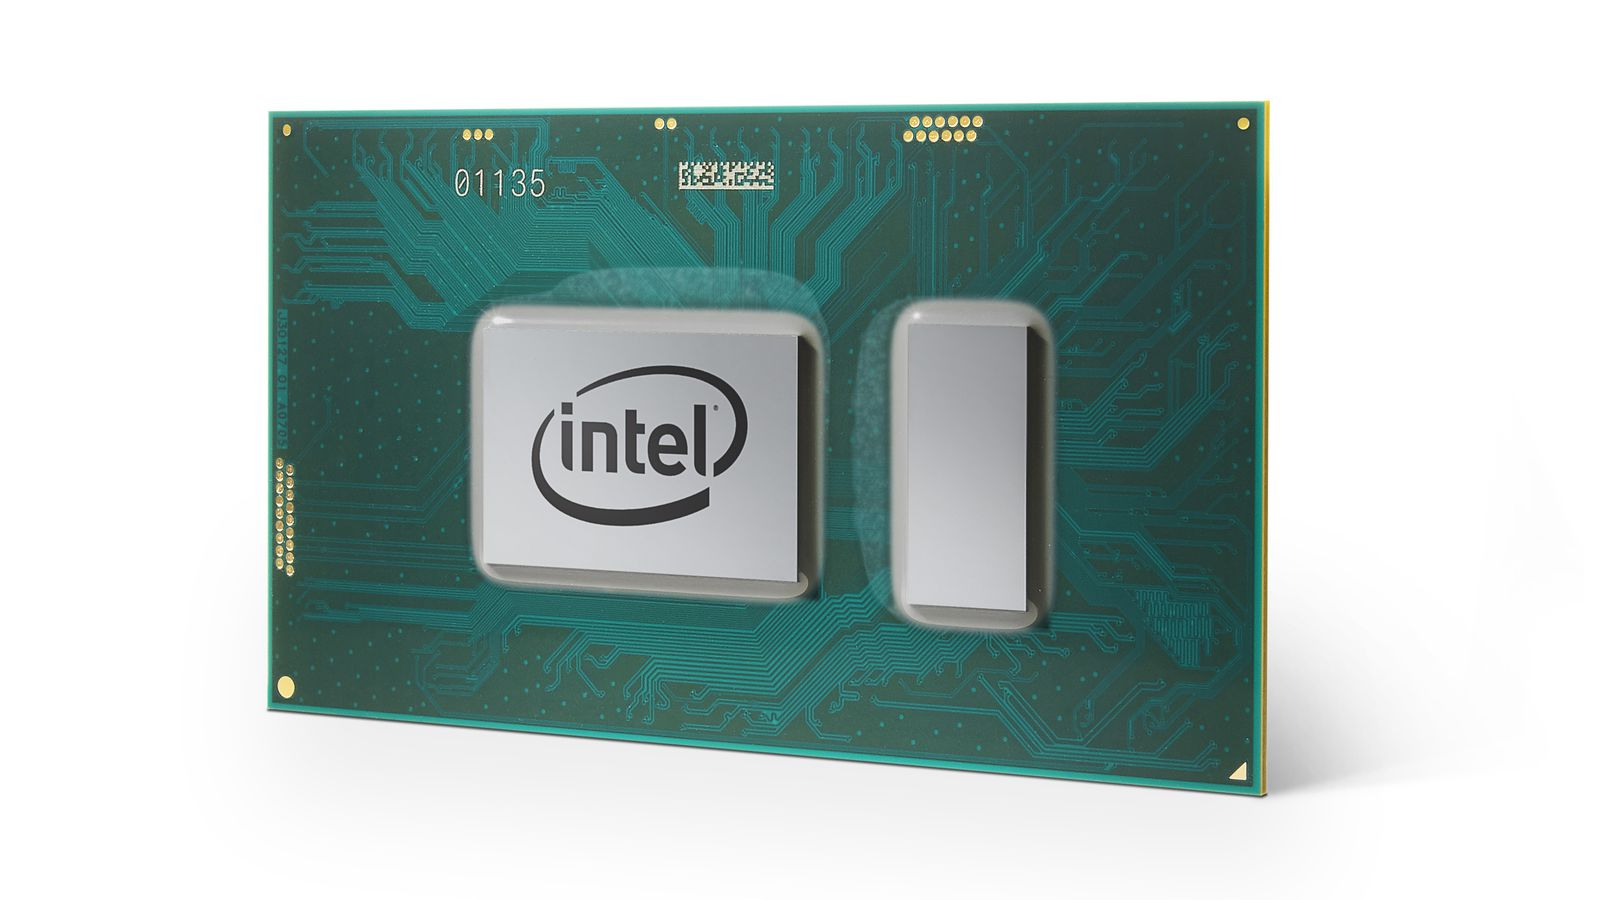 Intel's new 8th generation Core processors launch today with revised Kaby Lake chips